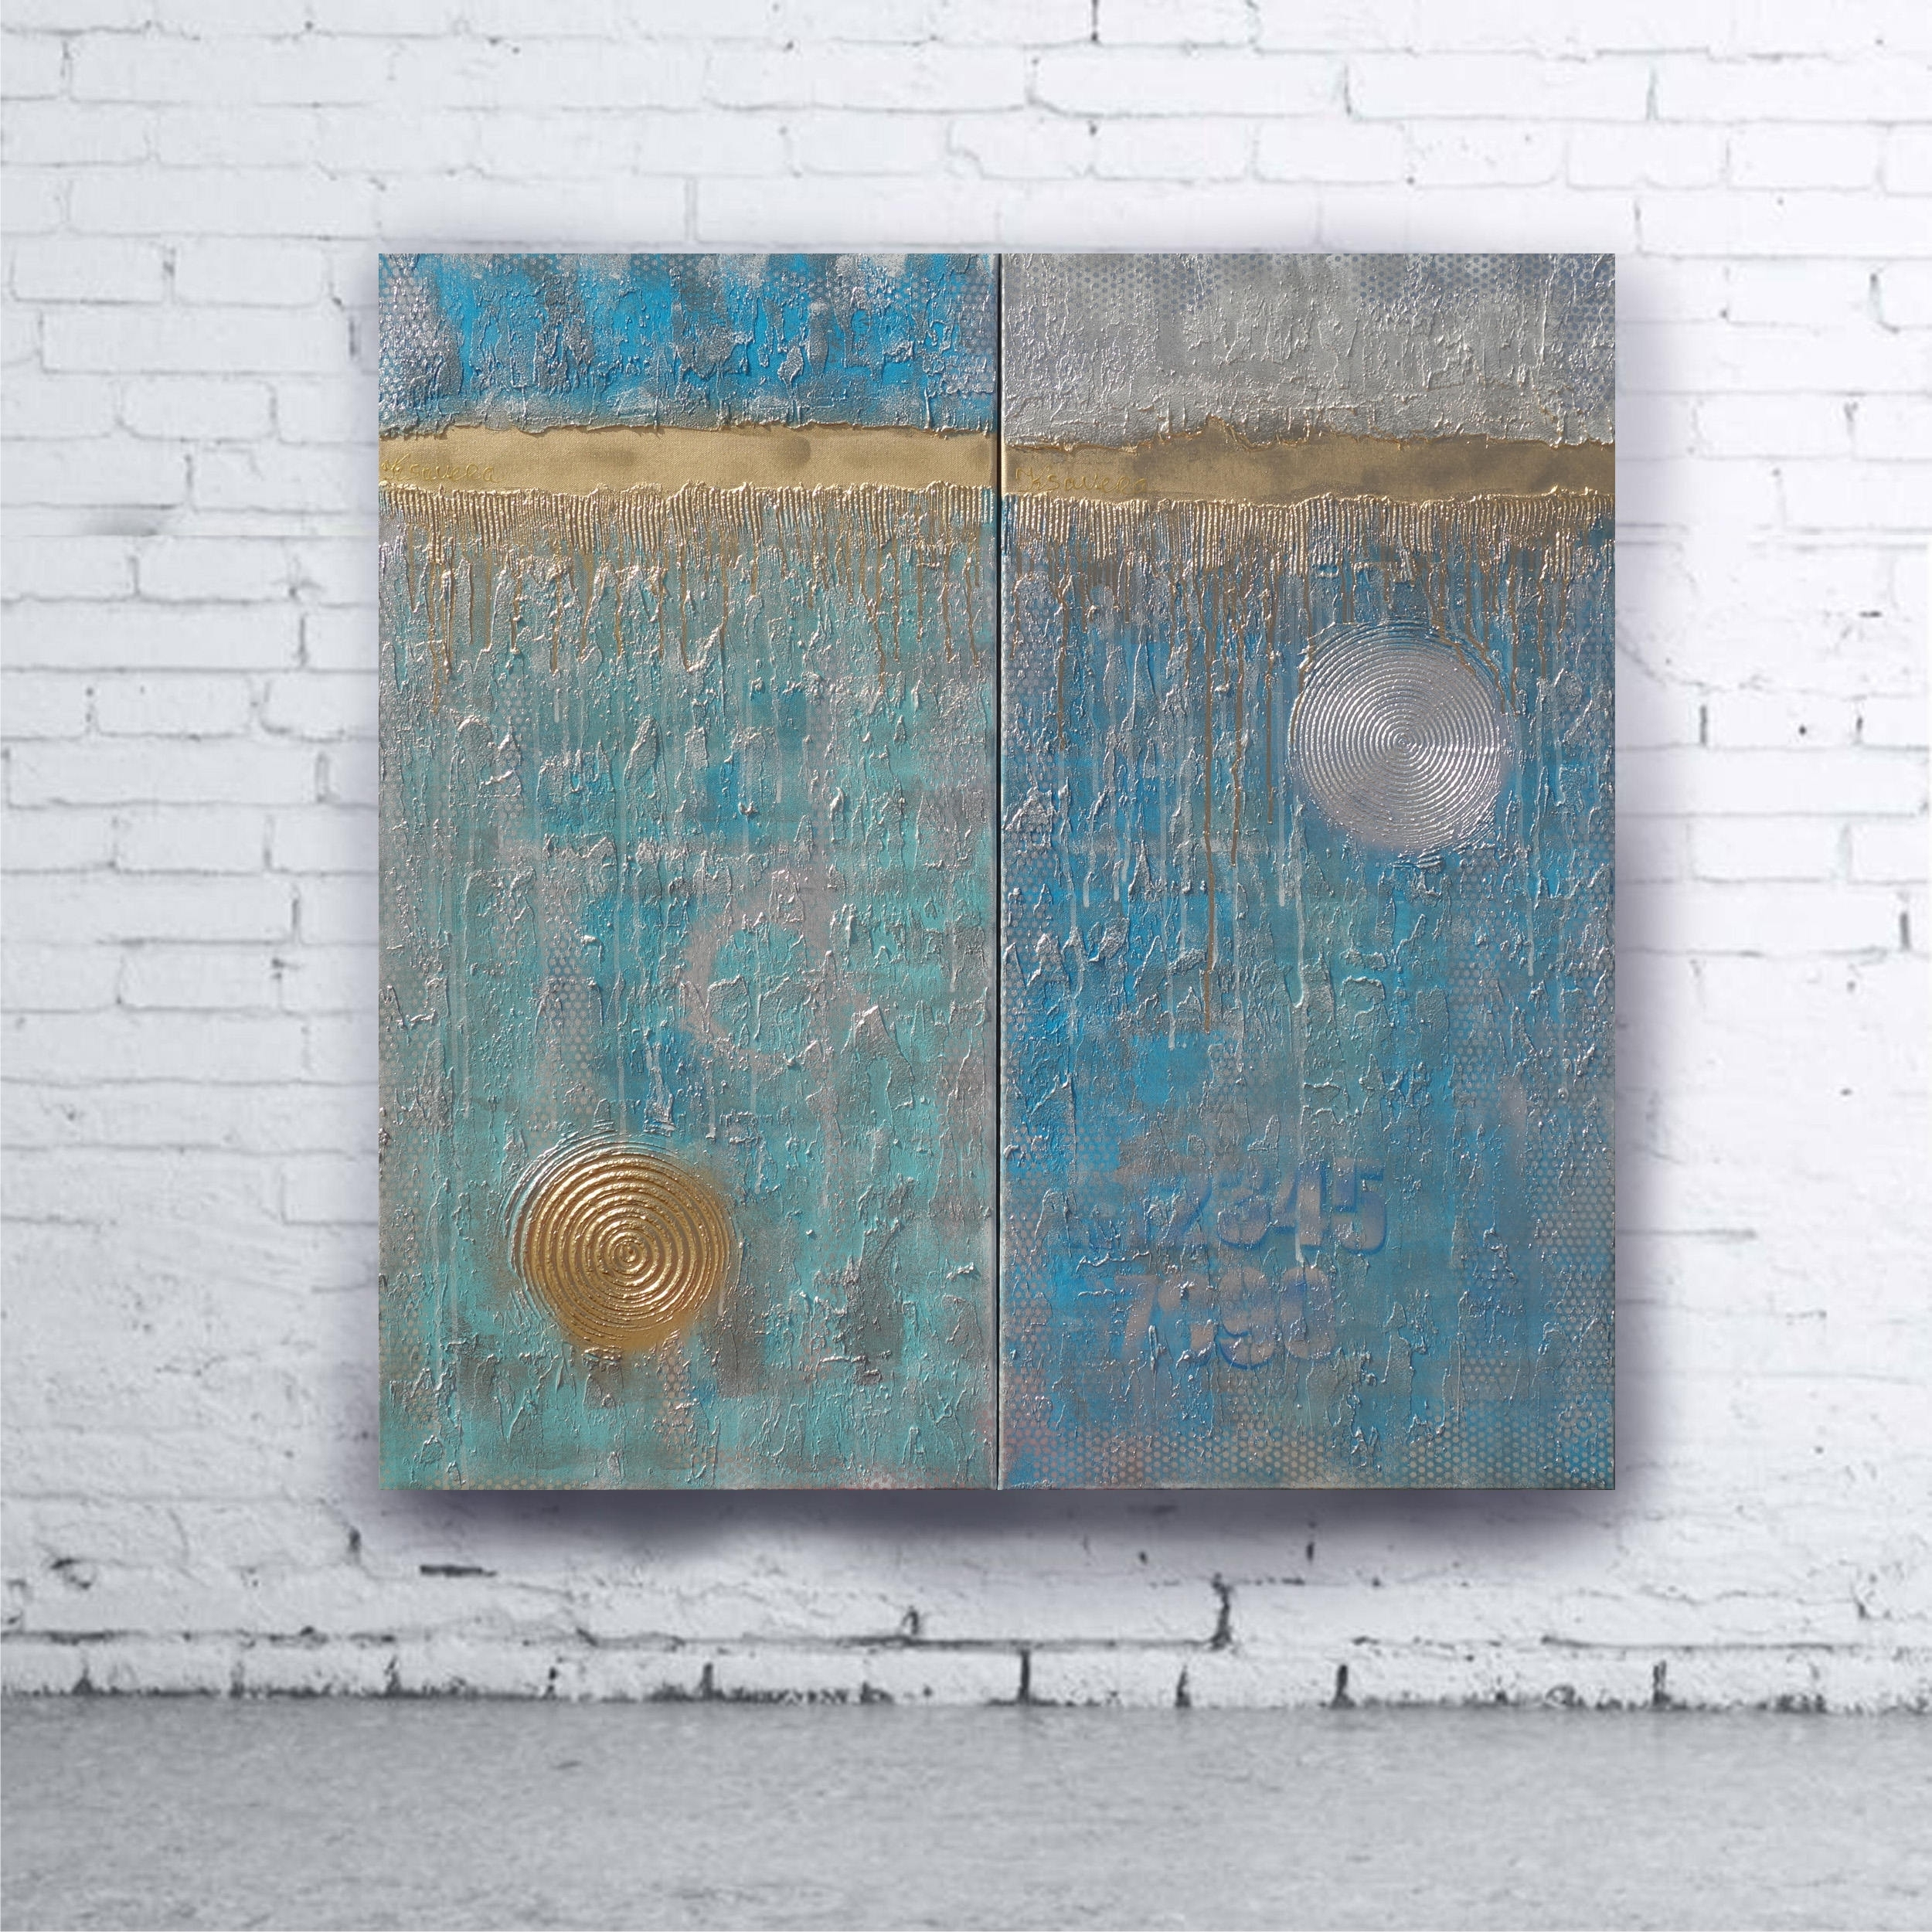 Turquoise Gold Abstract Painting Vertical Textured Wall Art A228 1 Inside Most Recently Released Turquoise Wall Art (View 6 of 20)